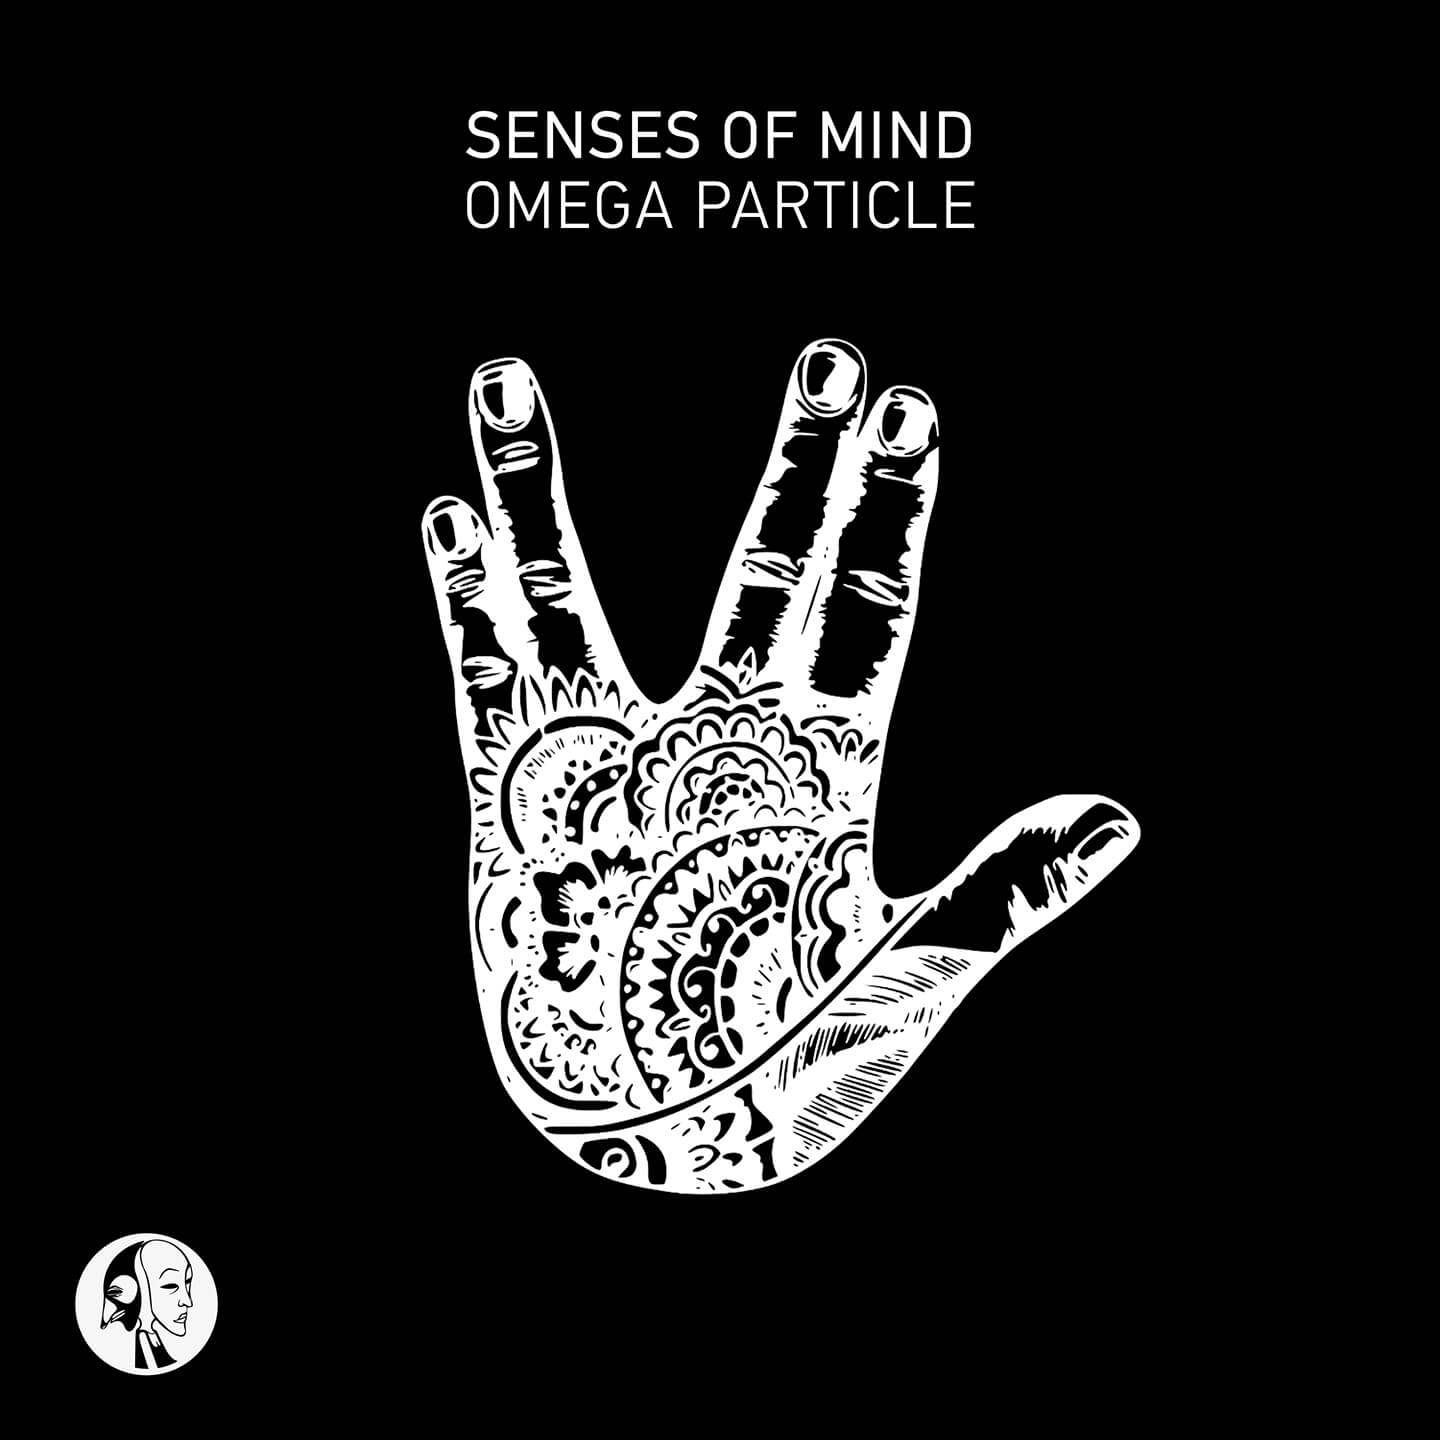 SYYKBLK056 - Steyoyoke Black - Senses Of Mind - Omega Particle SYYKBLK056